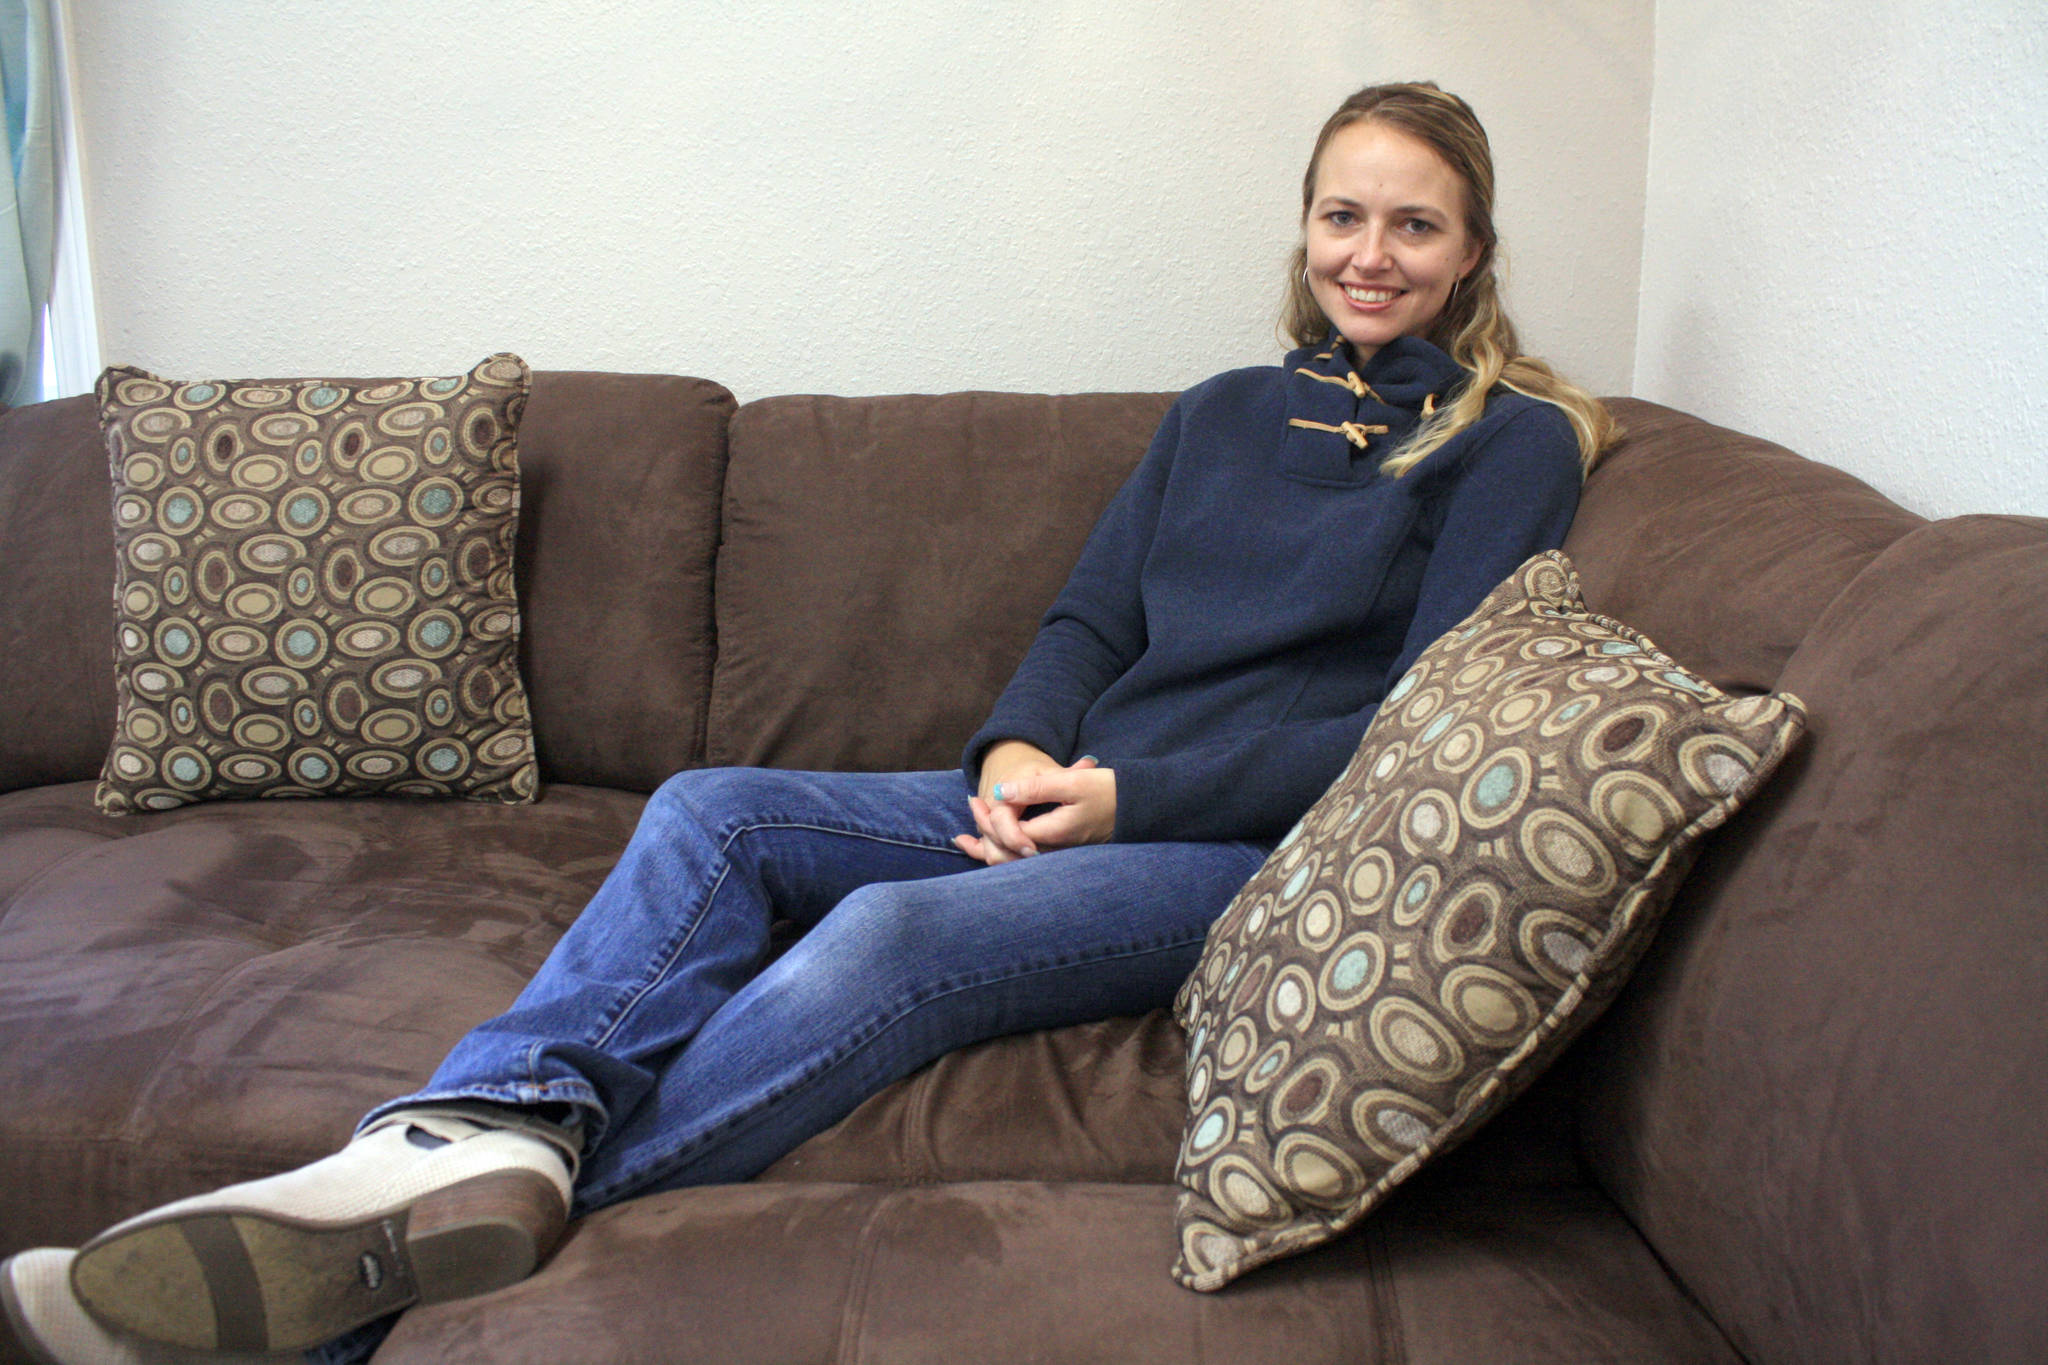 Freedom House founder Jennifer Waller is photographed at the women's recovery home in March 2018. Waller is hoping to open a men's recovery facility in early 2019. (Photo by Erin Thompson/Peninsula Clarion)